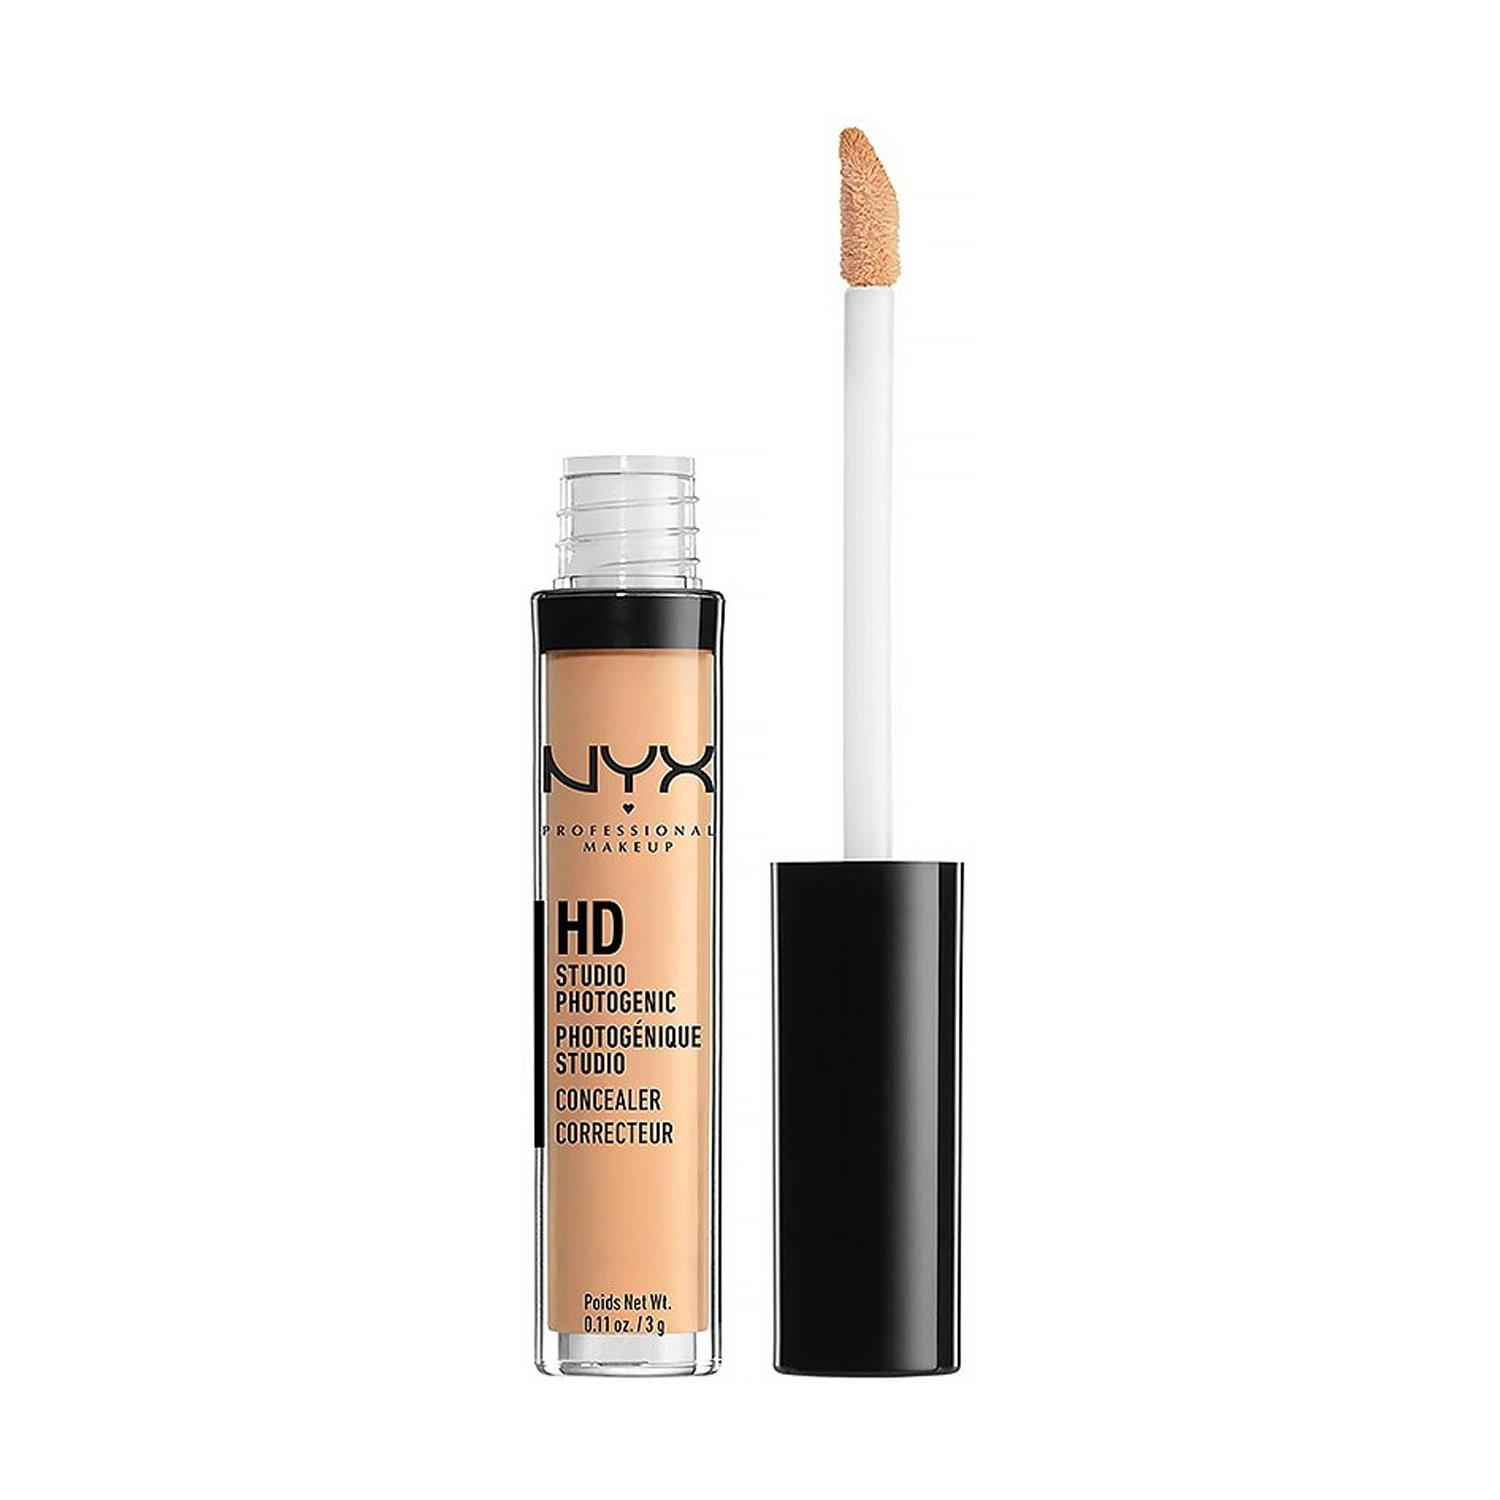 La mejor cobertura: 'Hi Definition Photo Corrector Wand' de NYX